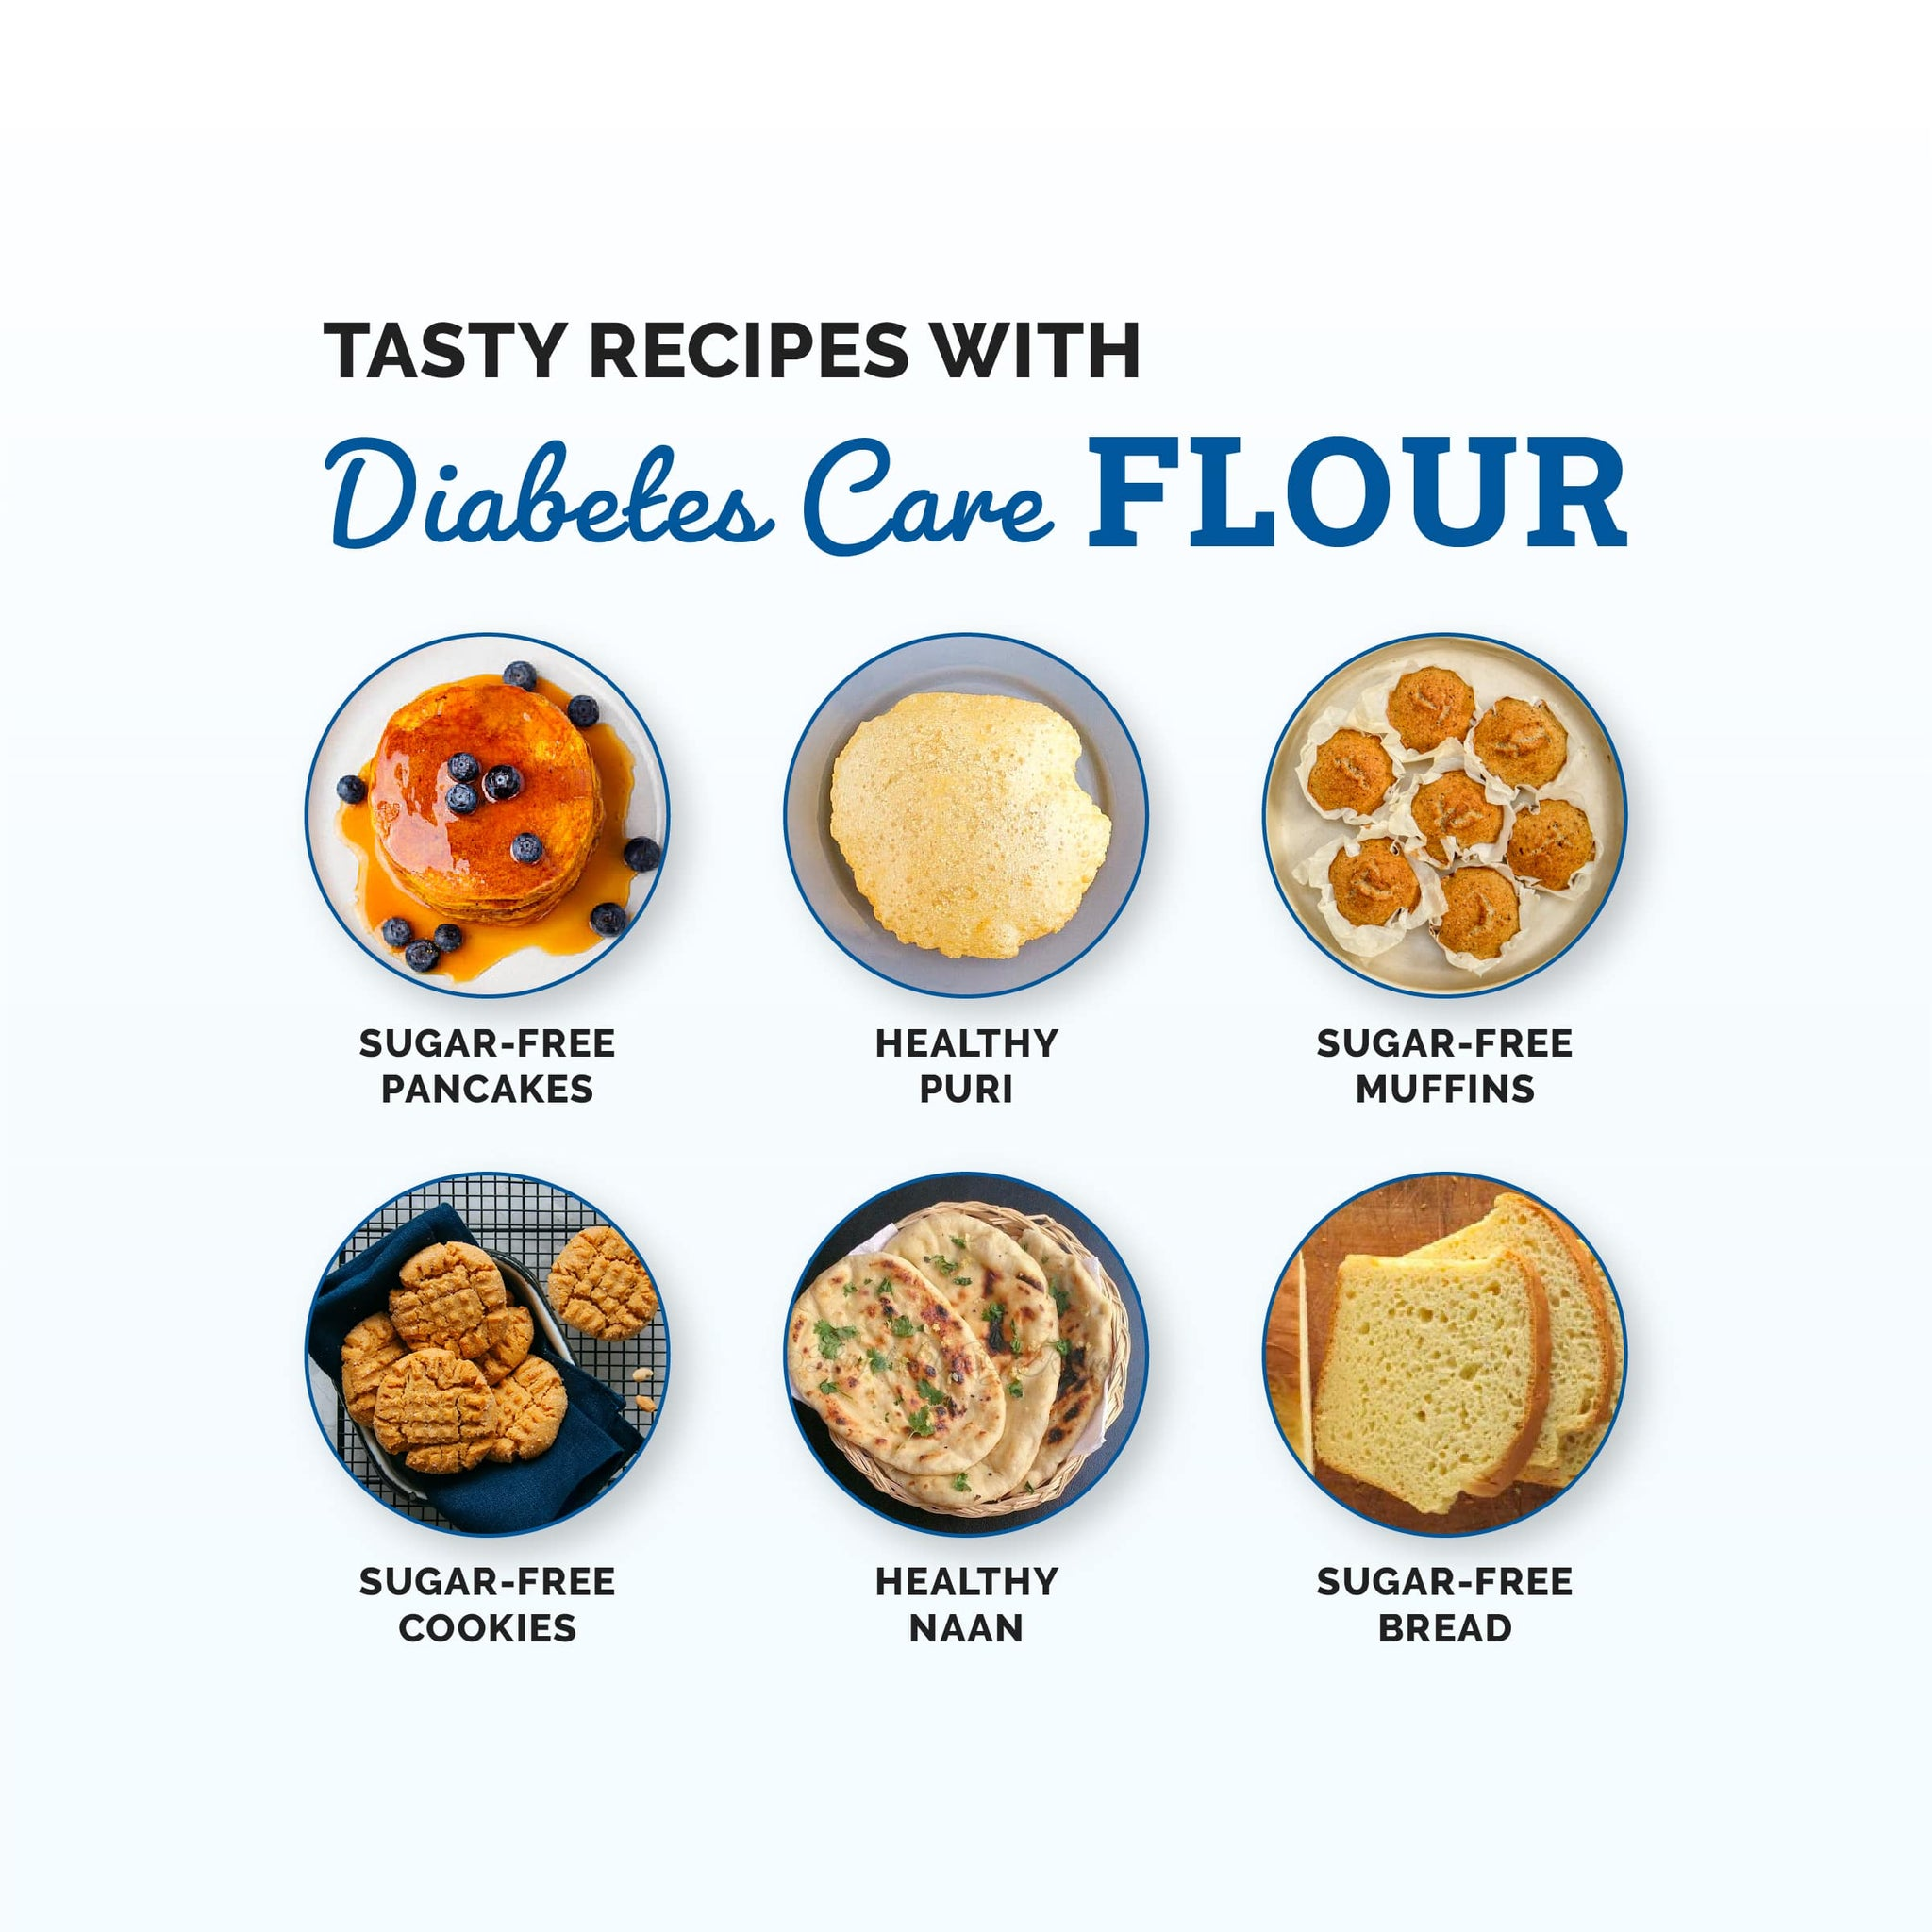 Diabetes Care Flour | Ultra Low Glycemic Index